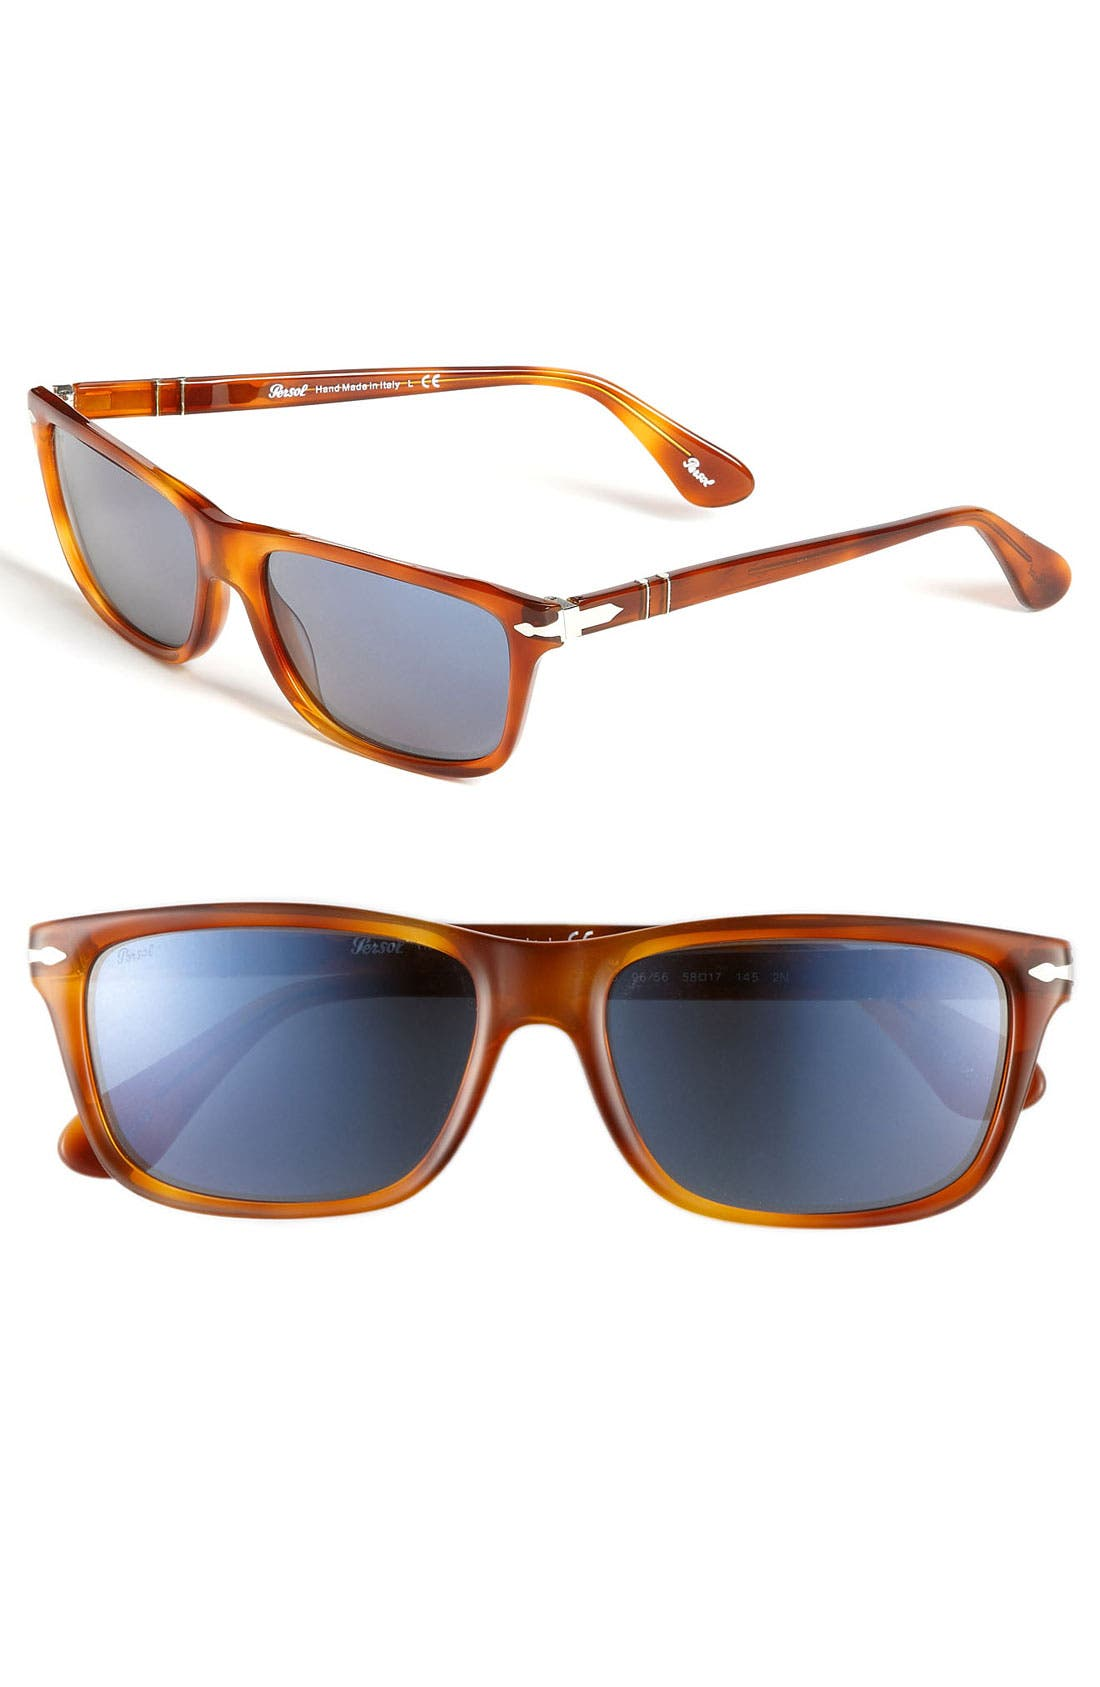 Main Image - Persol Rectangular Sunglasses